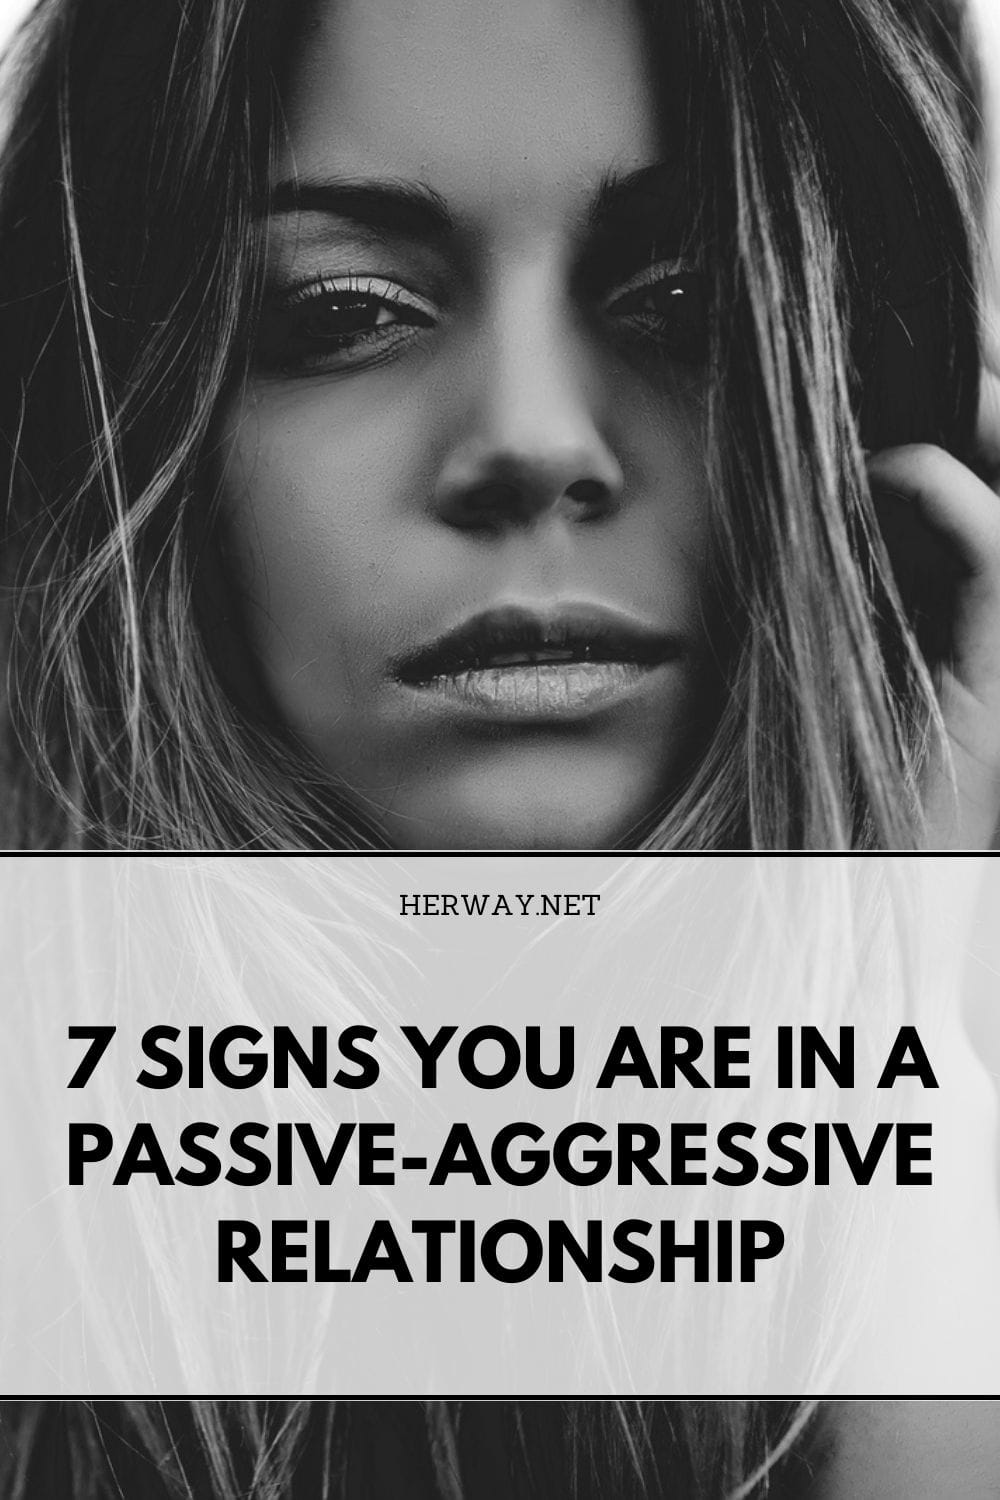 7 Signs You Are In A Passive-Aggressive Relationship